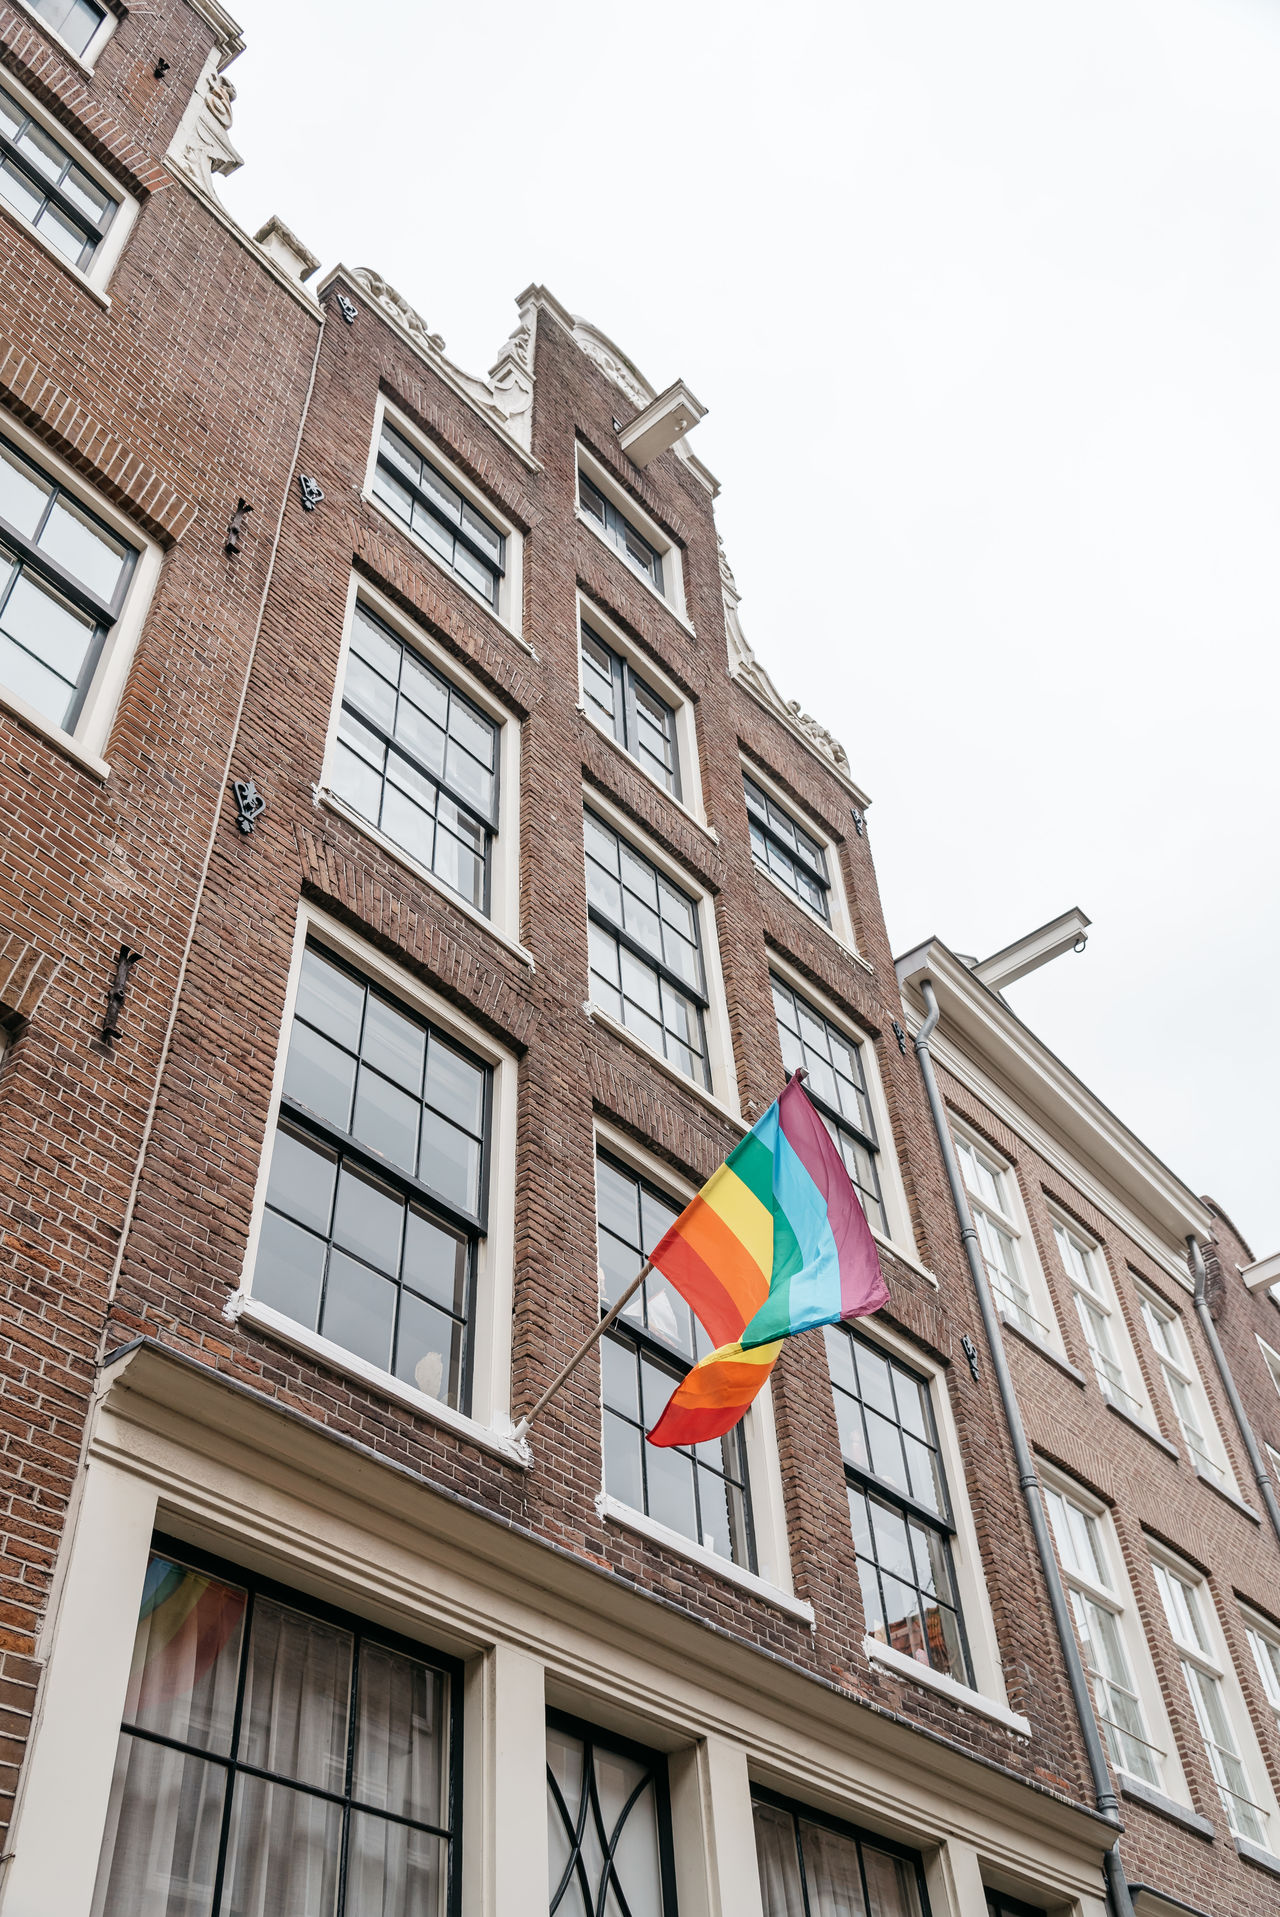 Beautiful stock photos of homosexuell, low angle view, flag, patriotism, building exterior